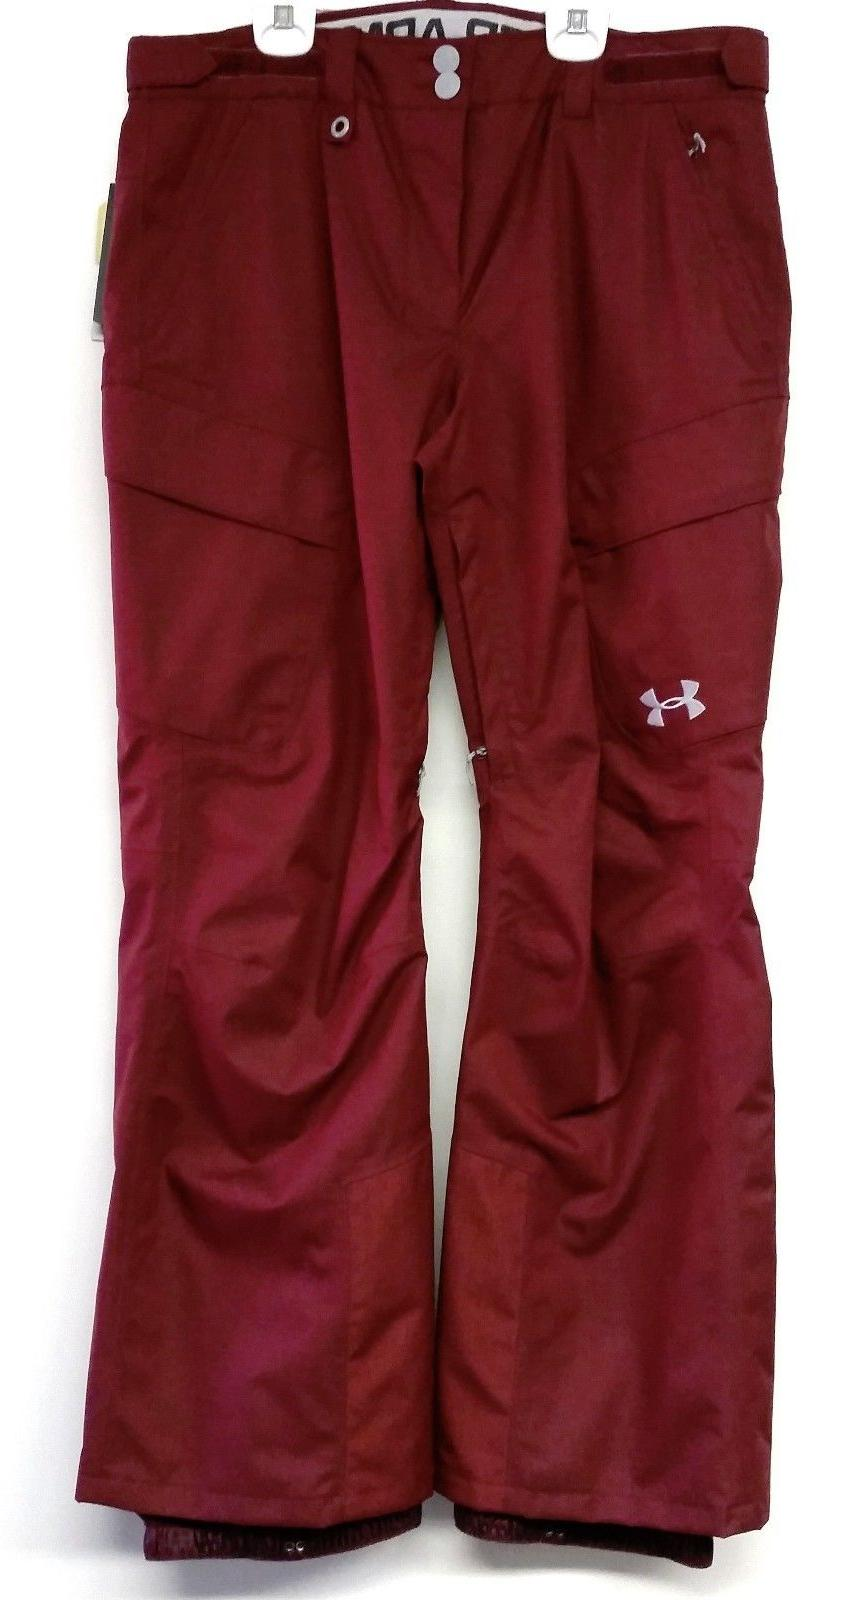 UNDER ARMOUR Men's Snow Pants - Wine - Large - NWT